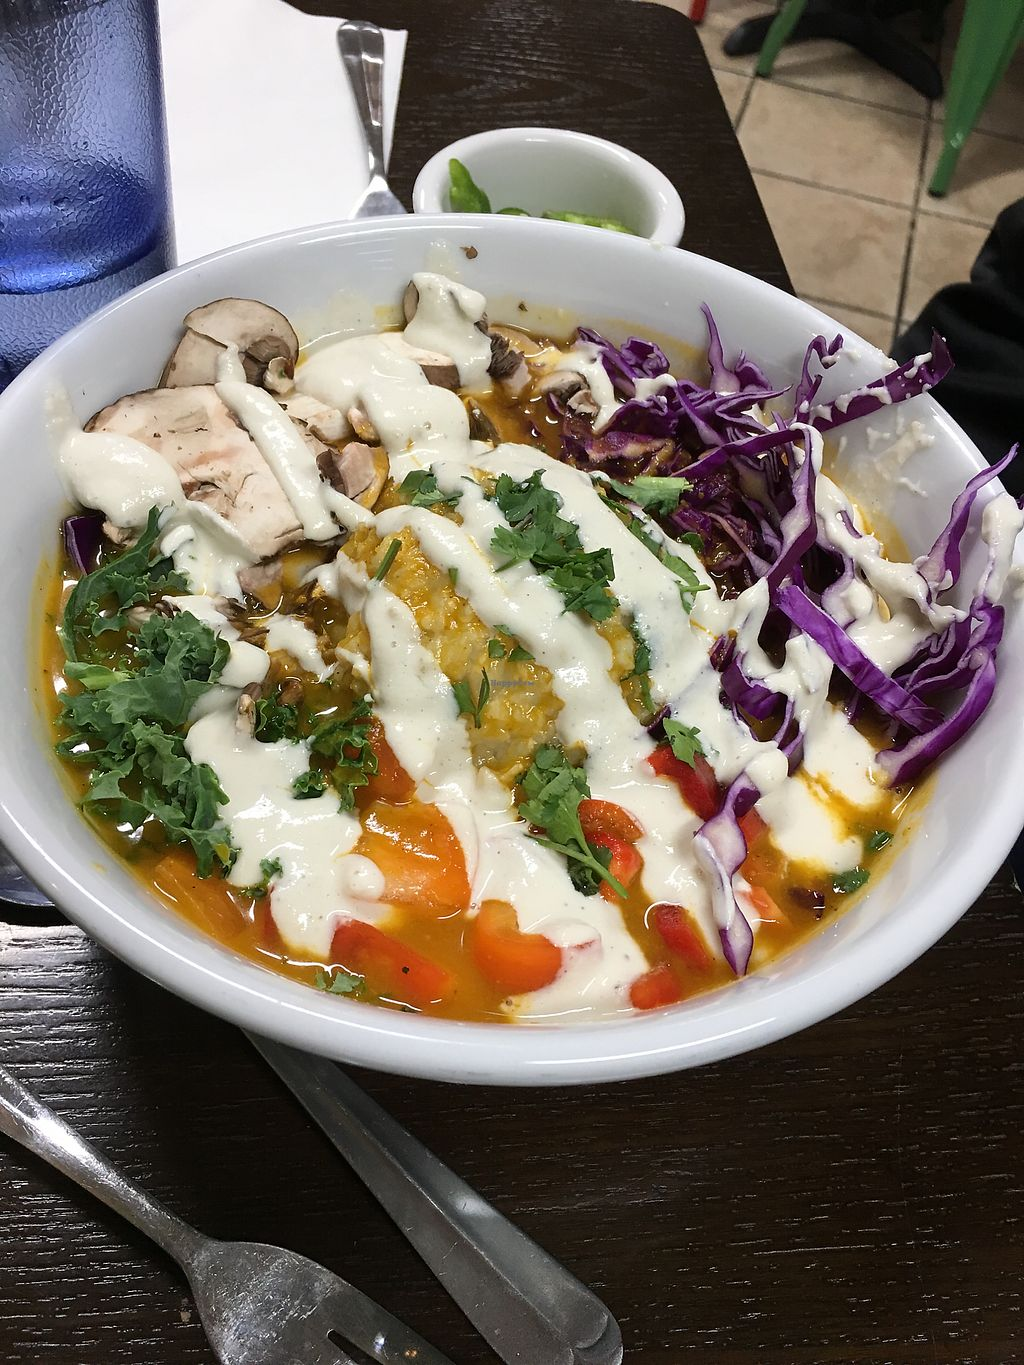 "Photo of Zest Kitchen  by <a href=""/members/profile/Mamasimi"">Mamasimi</a> <br/>Prana bowl <br/> February 27, 2018  - <a href='/contact/abuse/image/94028/364675'>Report</a>"